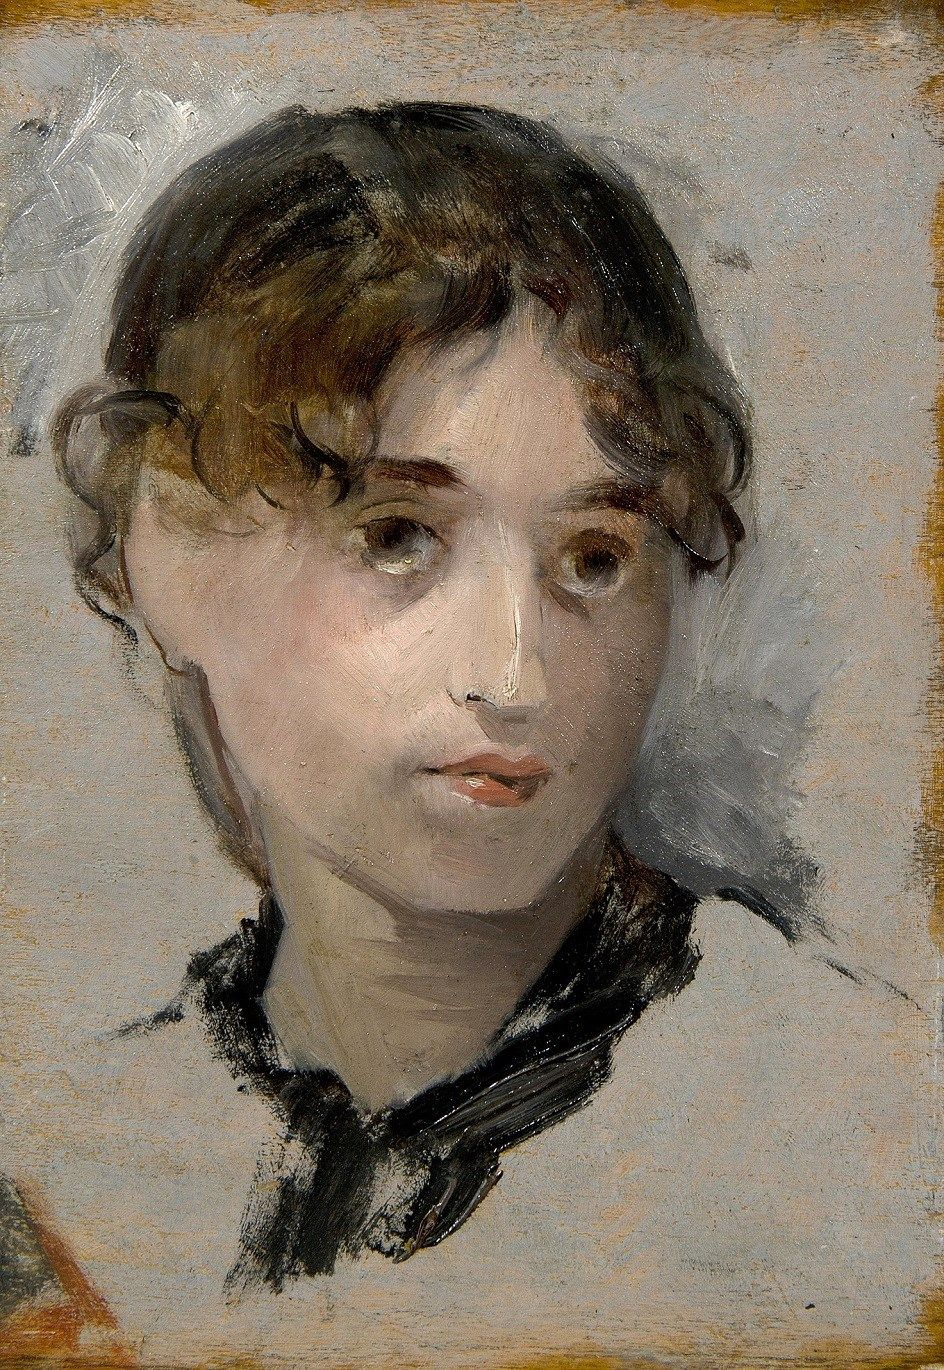 It's About Time: 1800s Women Artists By Eva Gonzalès ...